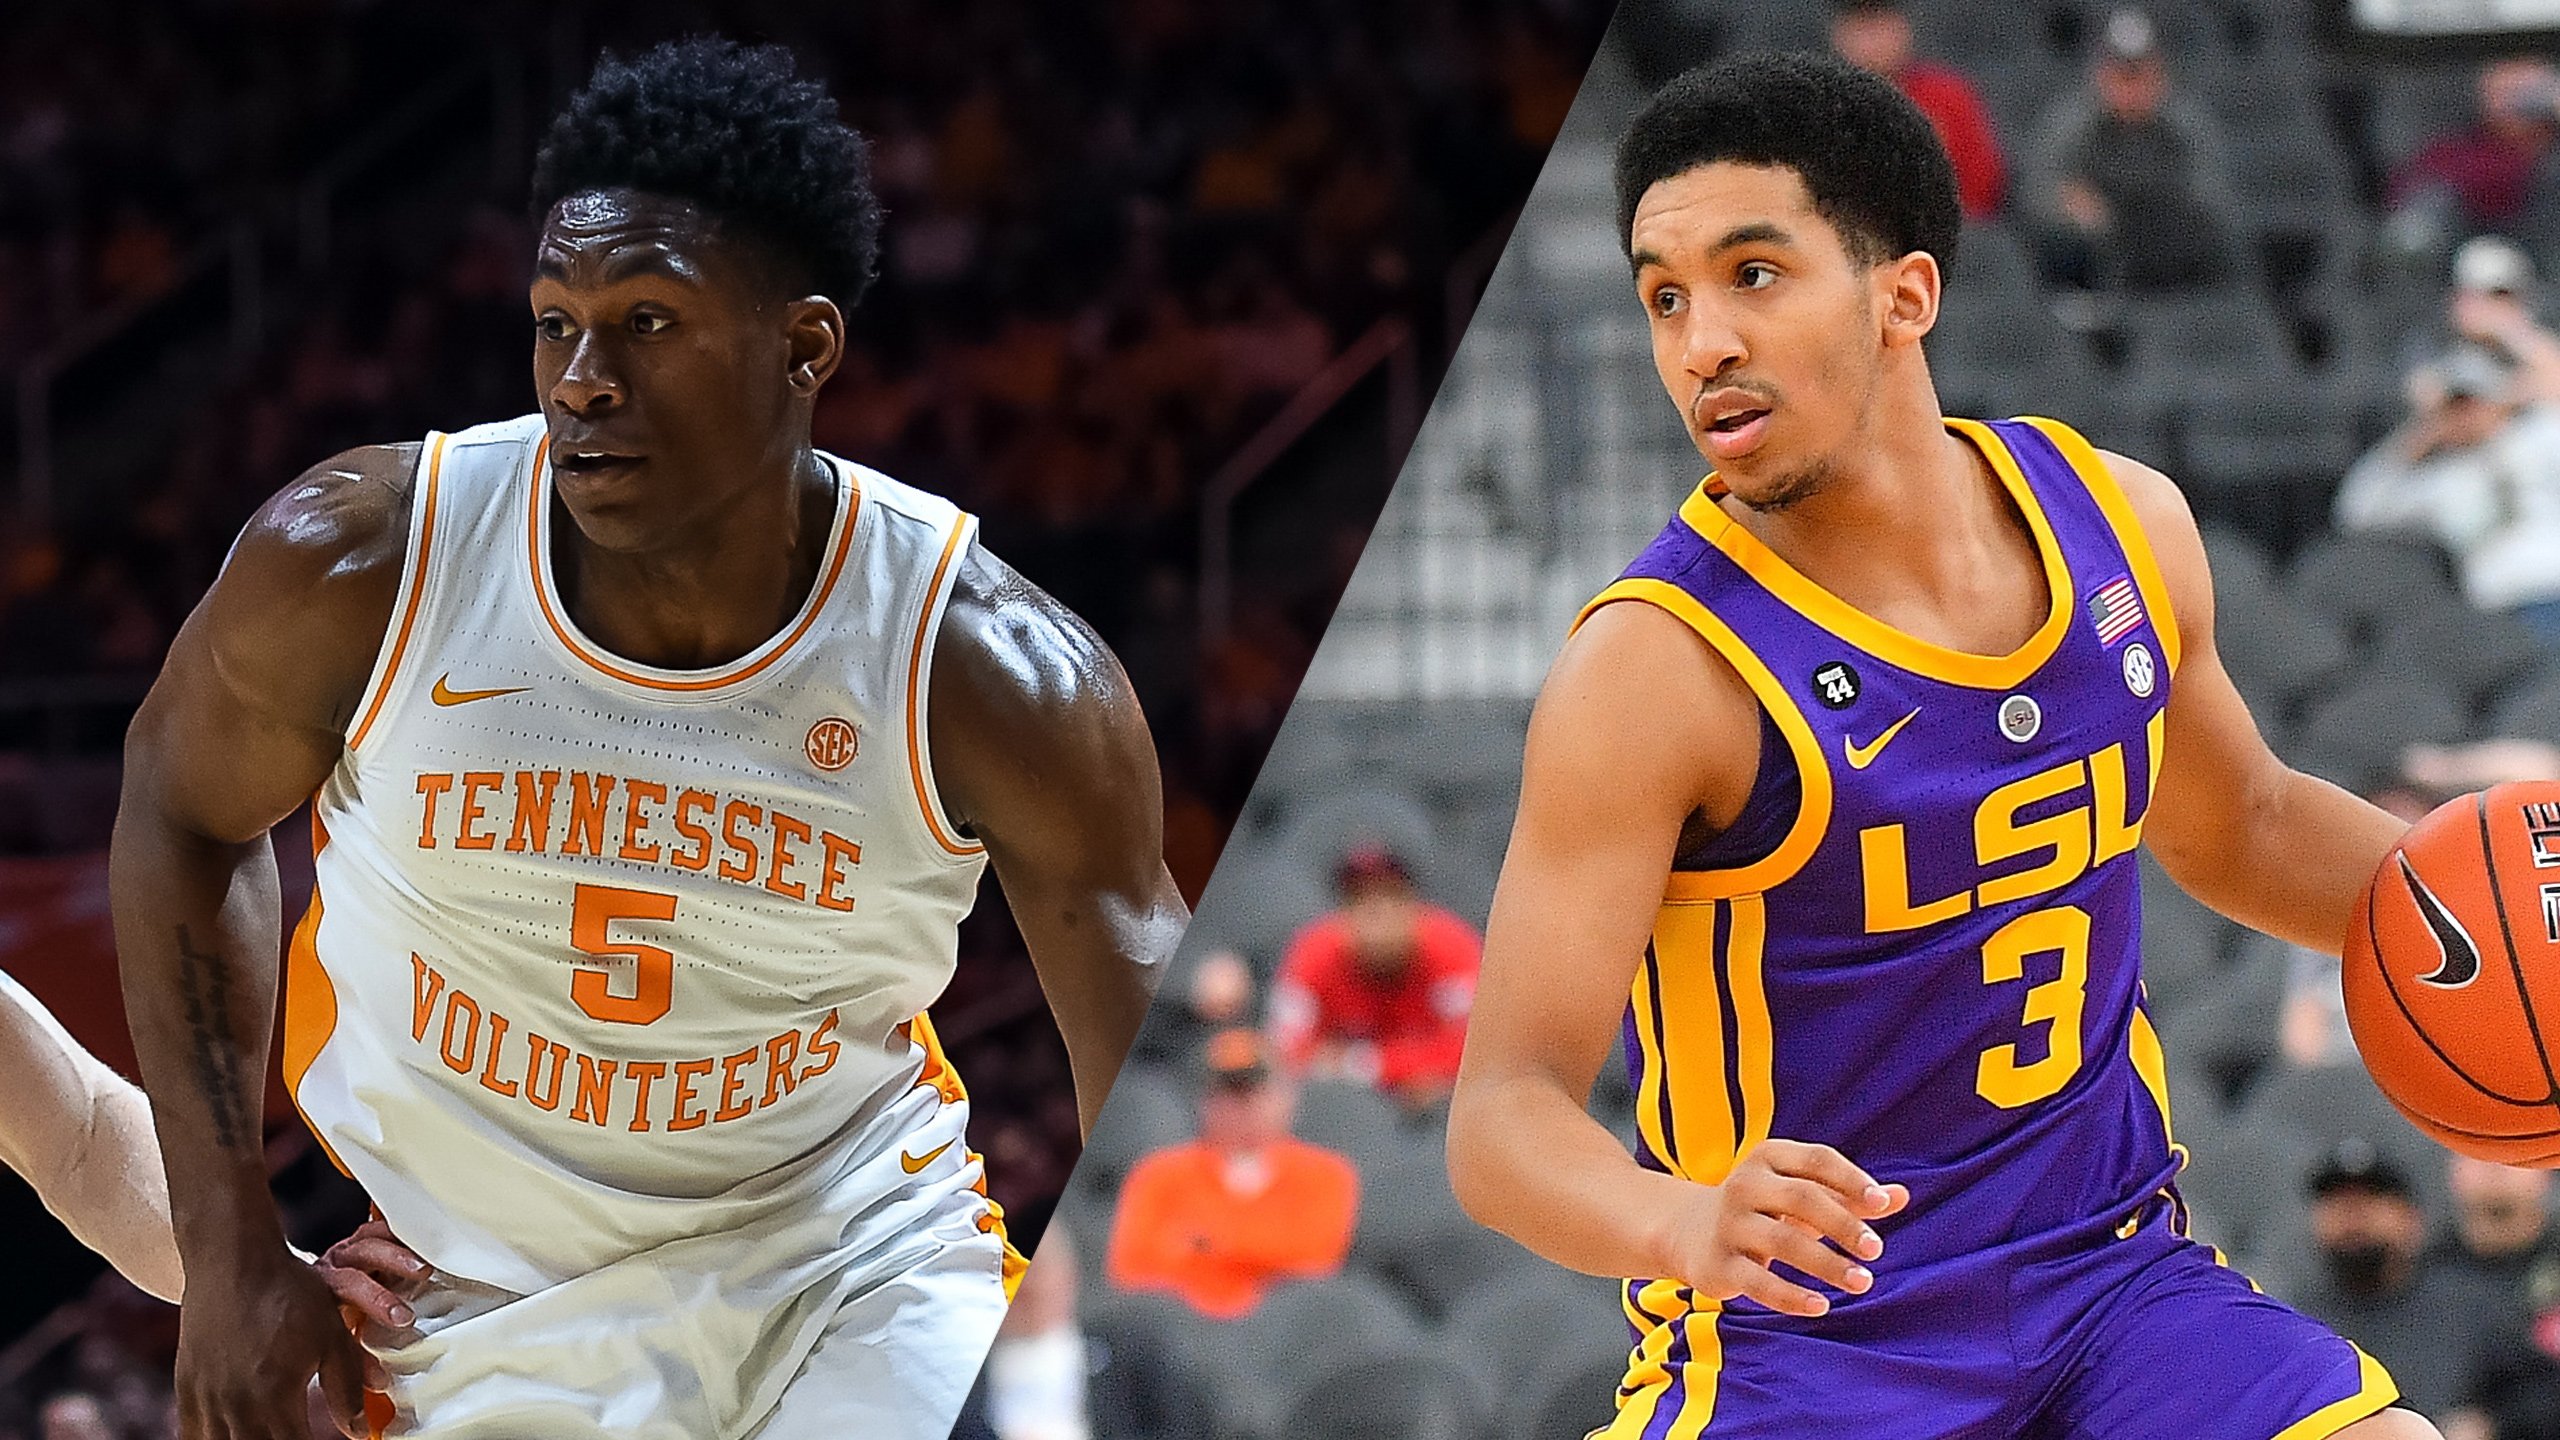 #5 Tennessee vs. #13 LSU (M Basketball)